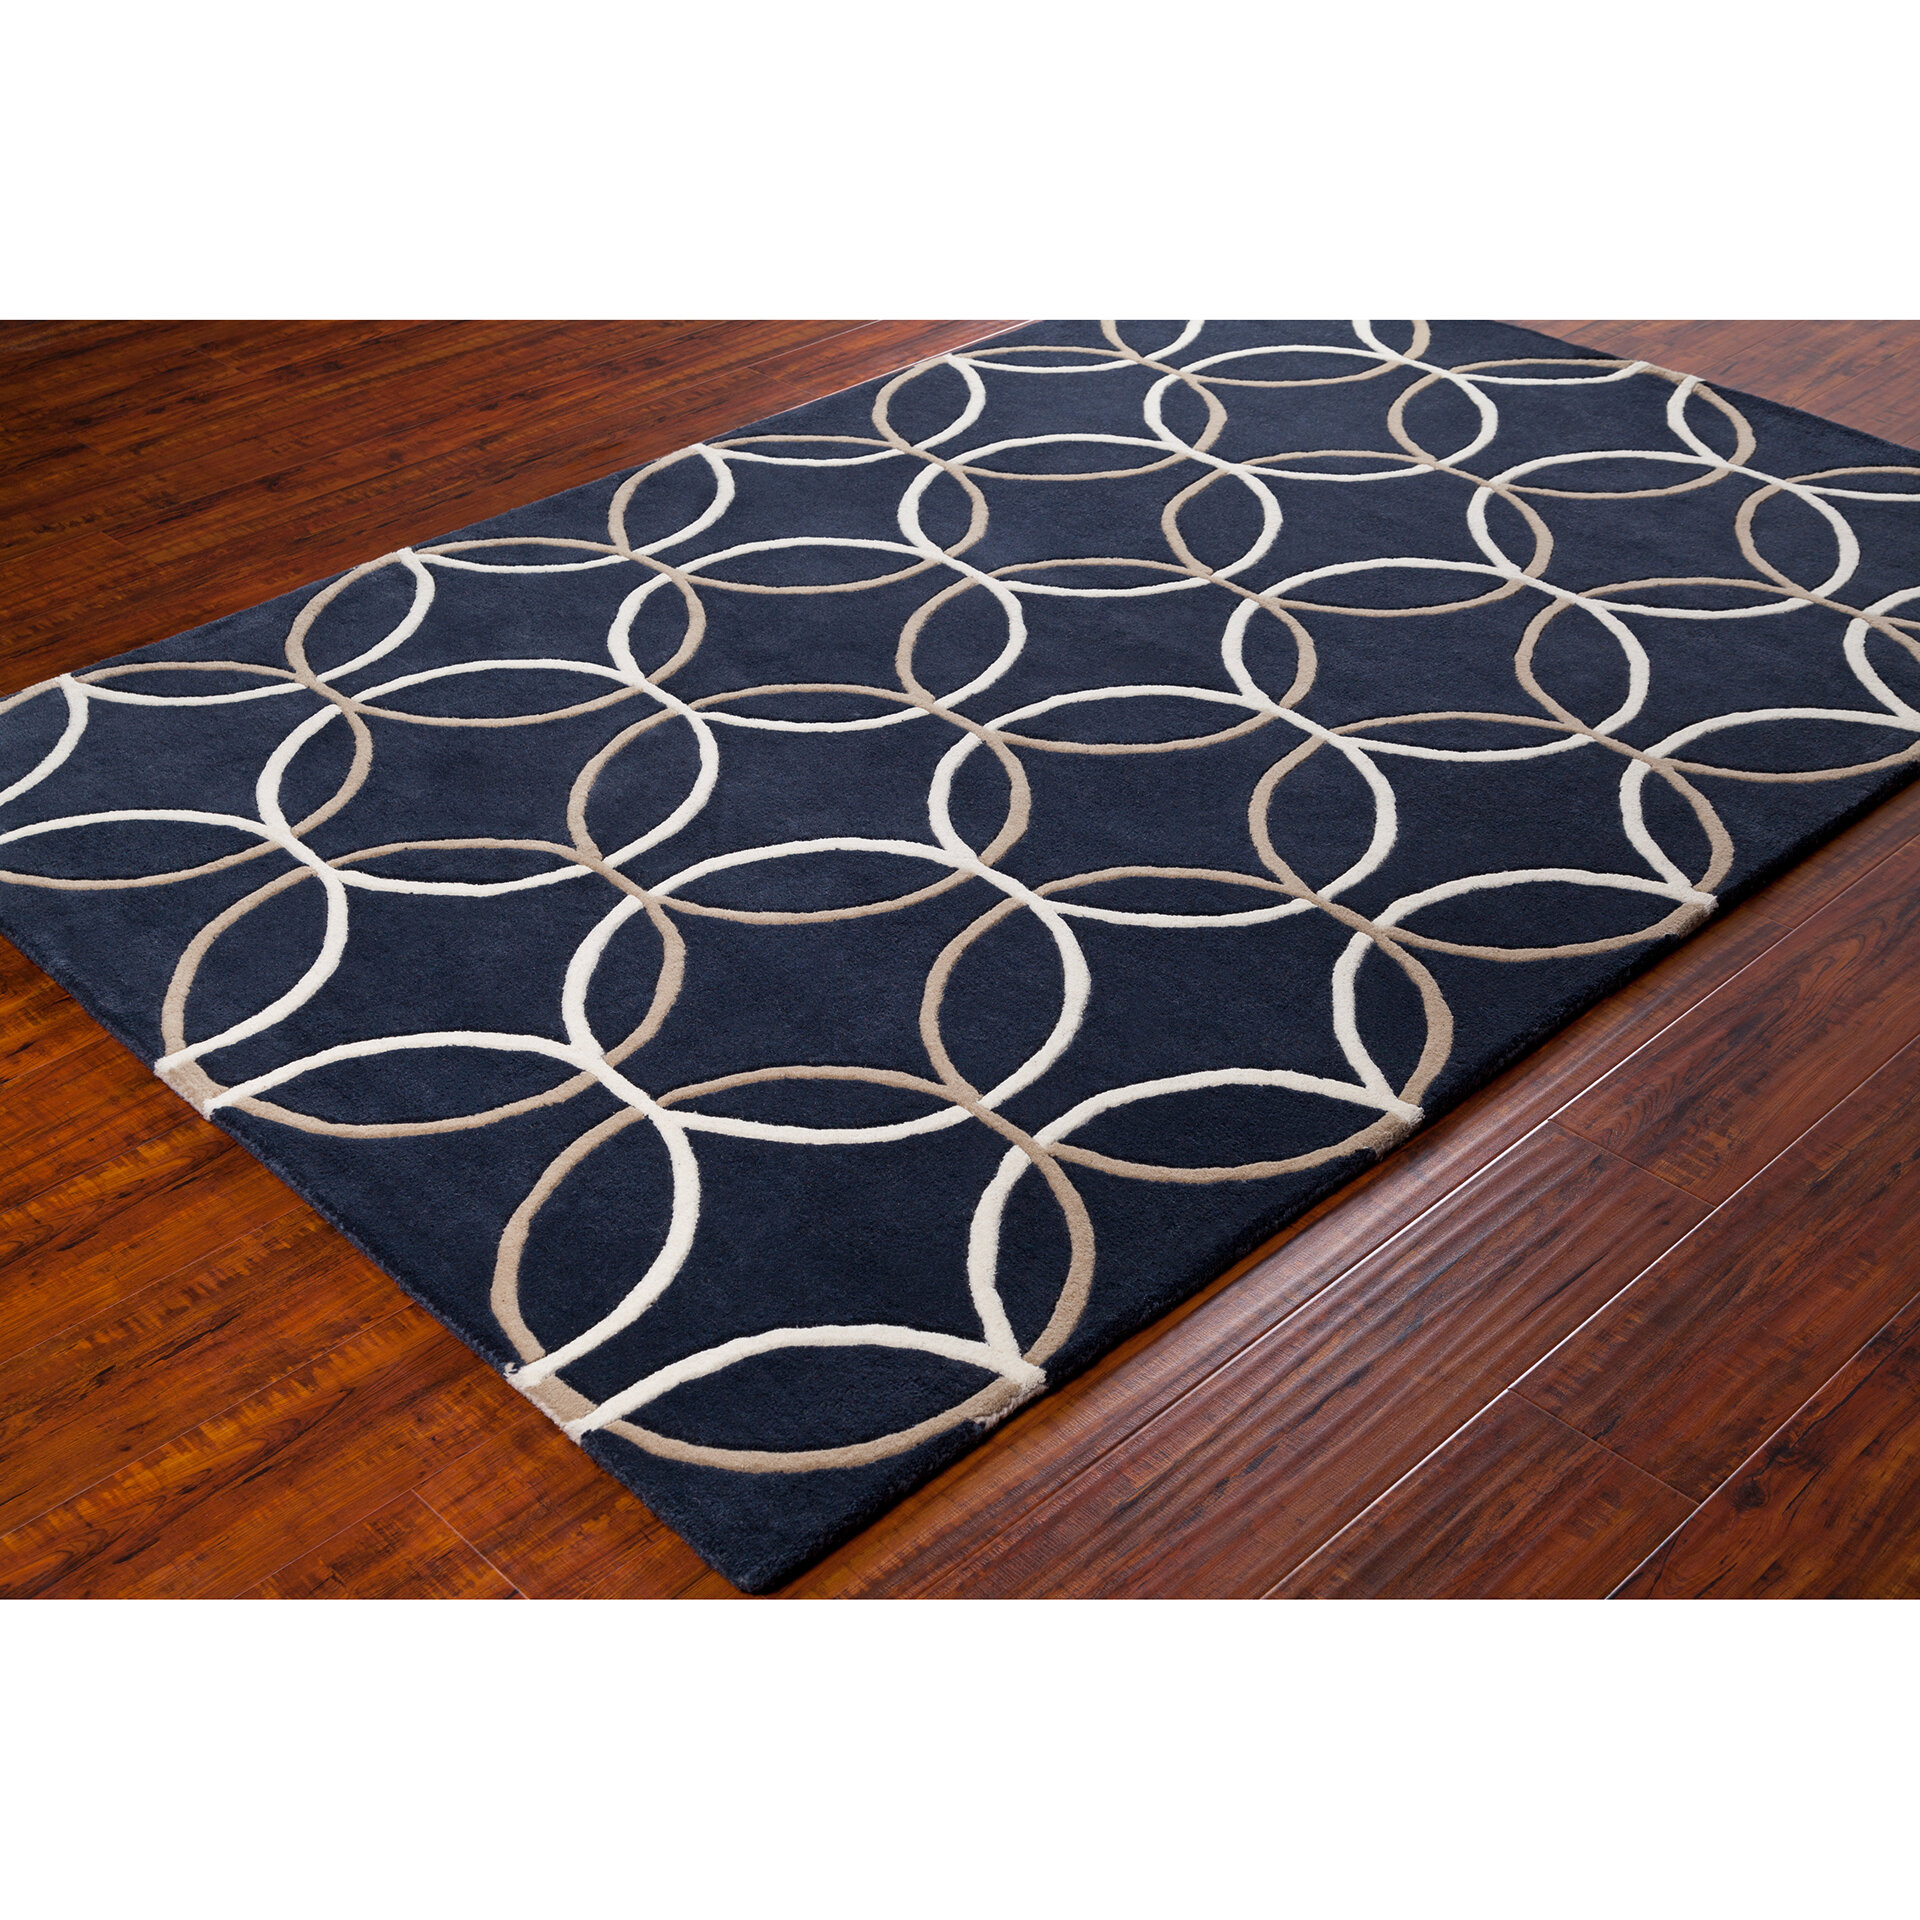 Patterned Area Rugs Best Decorating Design